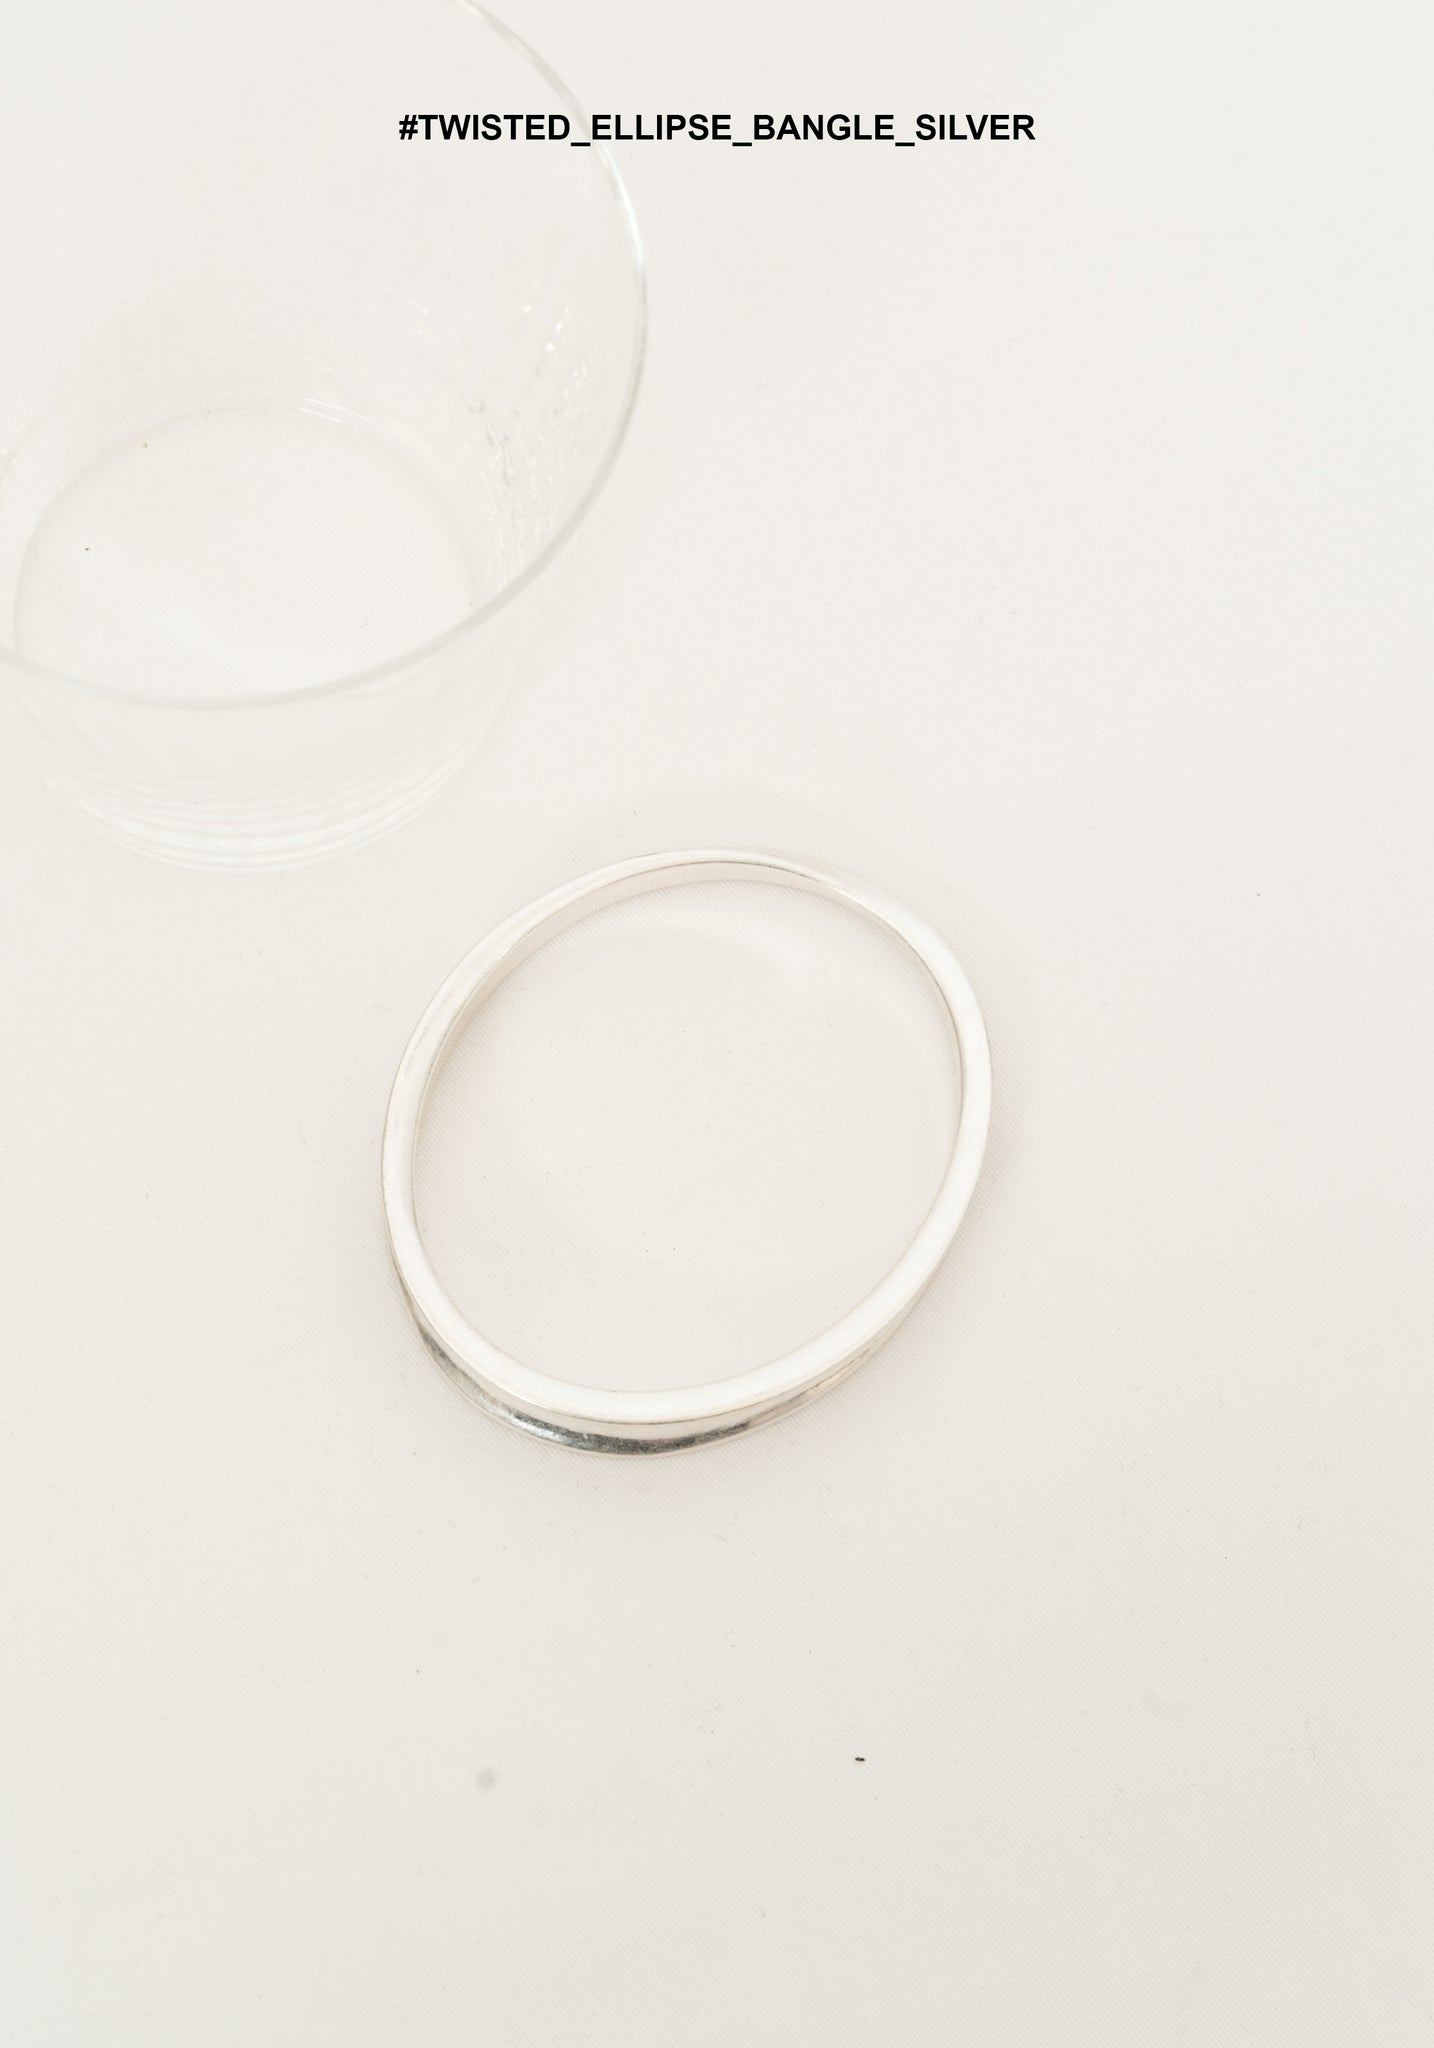 Twisted Ellipse Bangle Silver